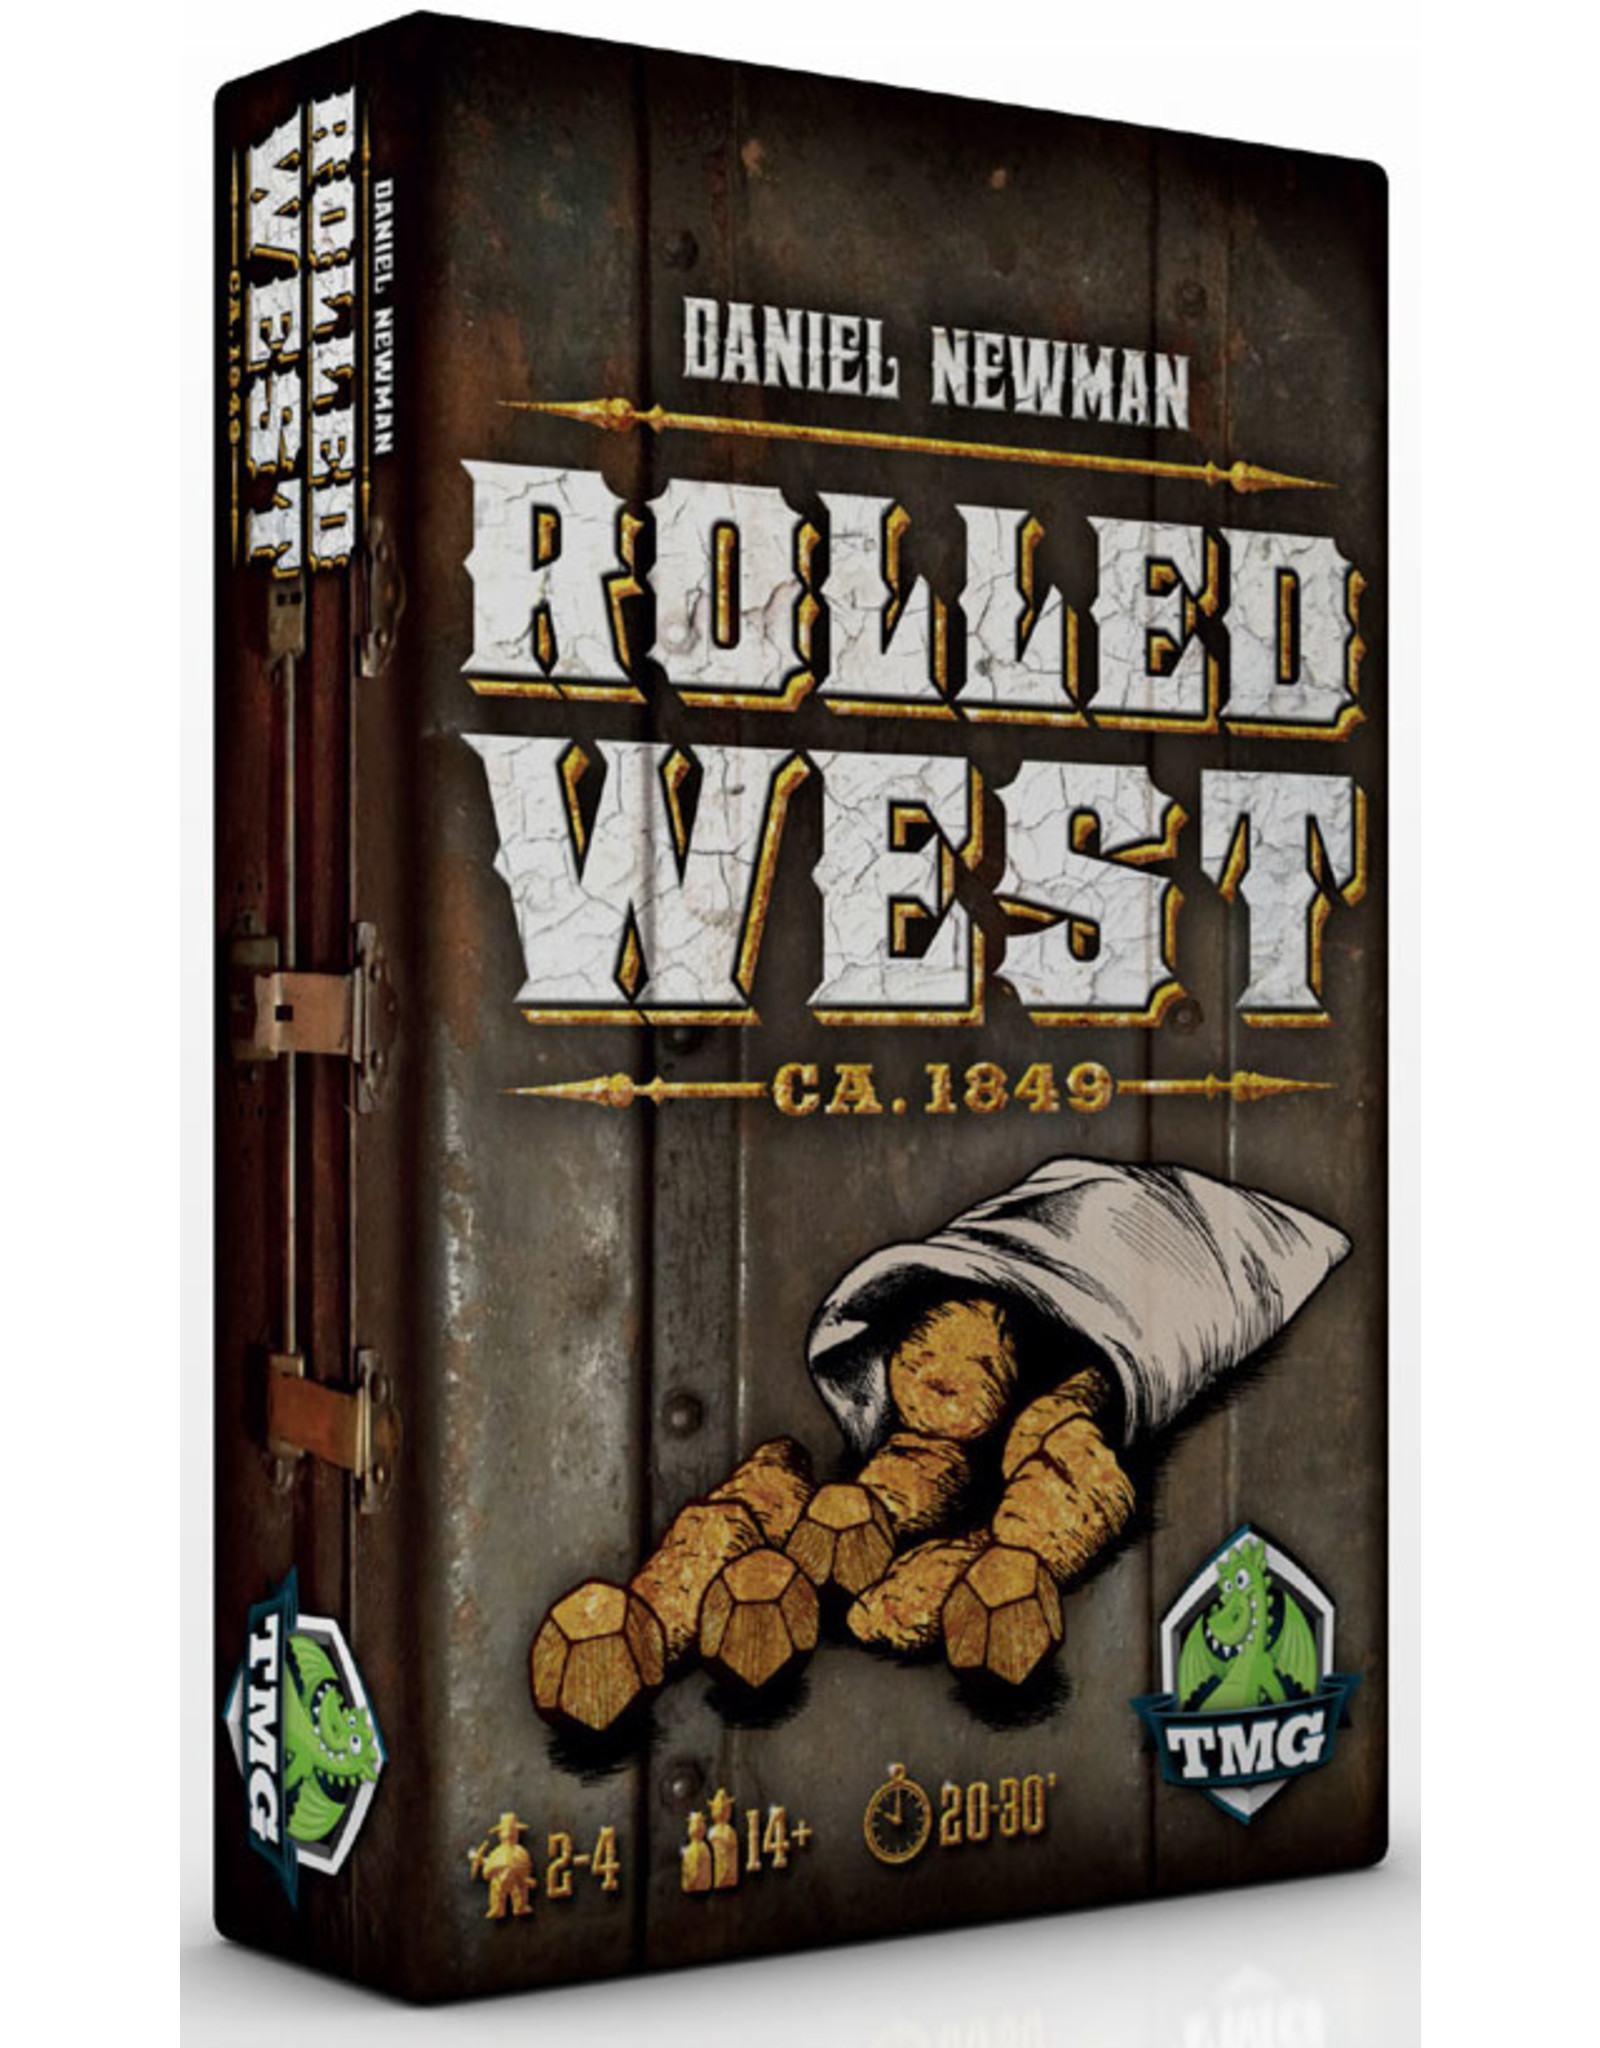 TMG Rolled West